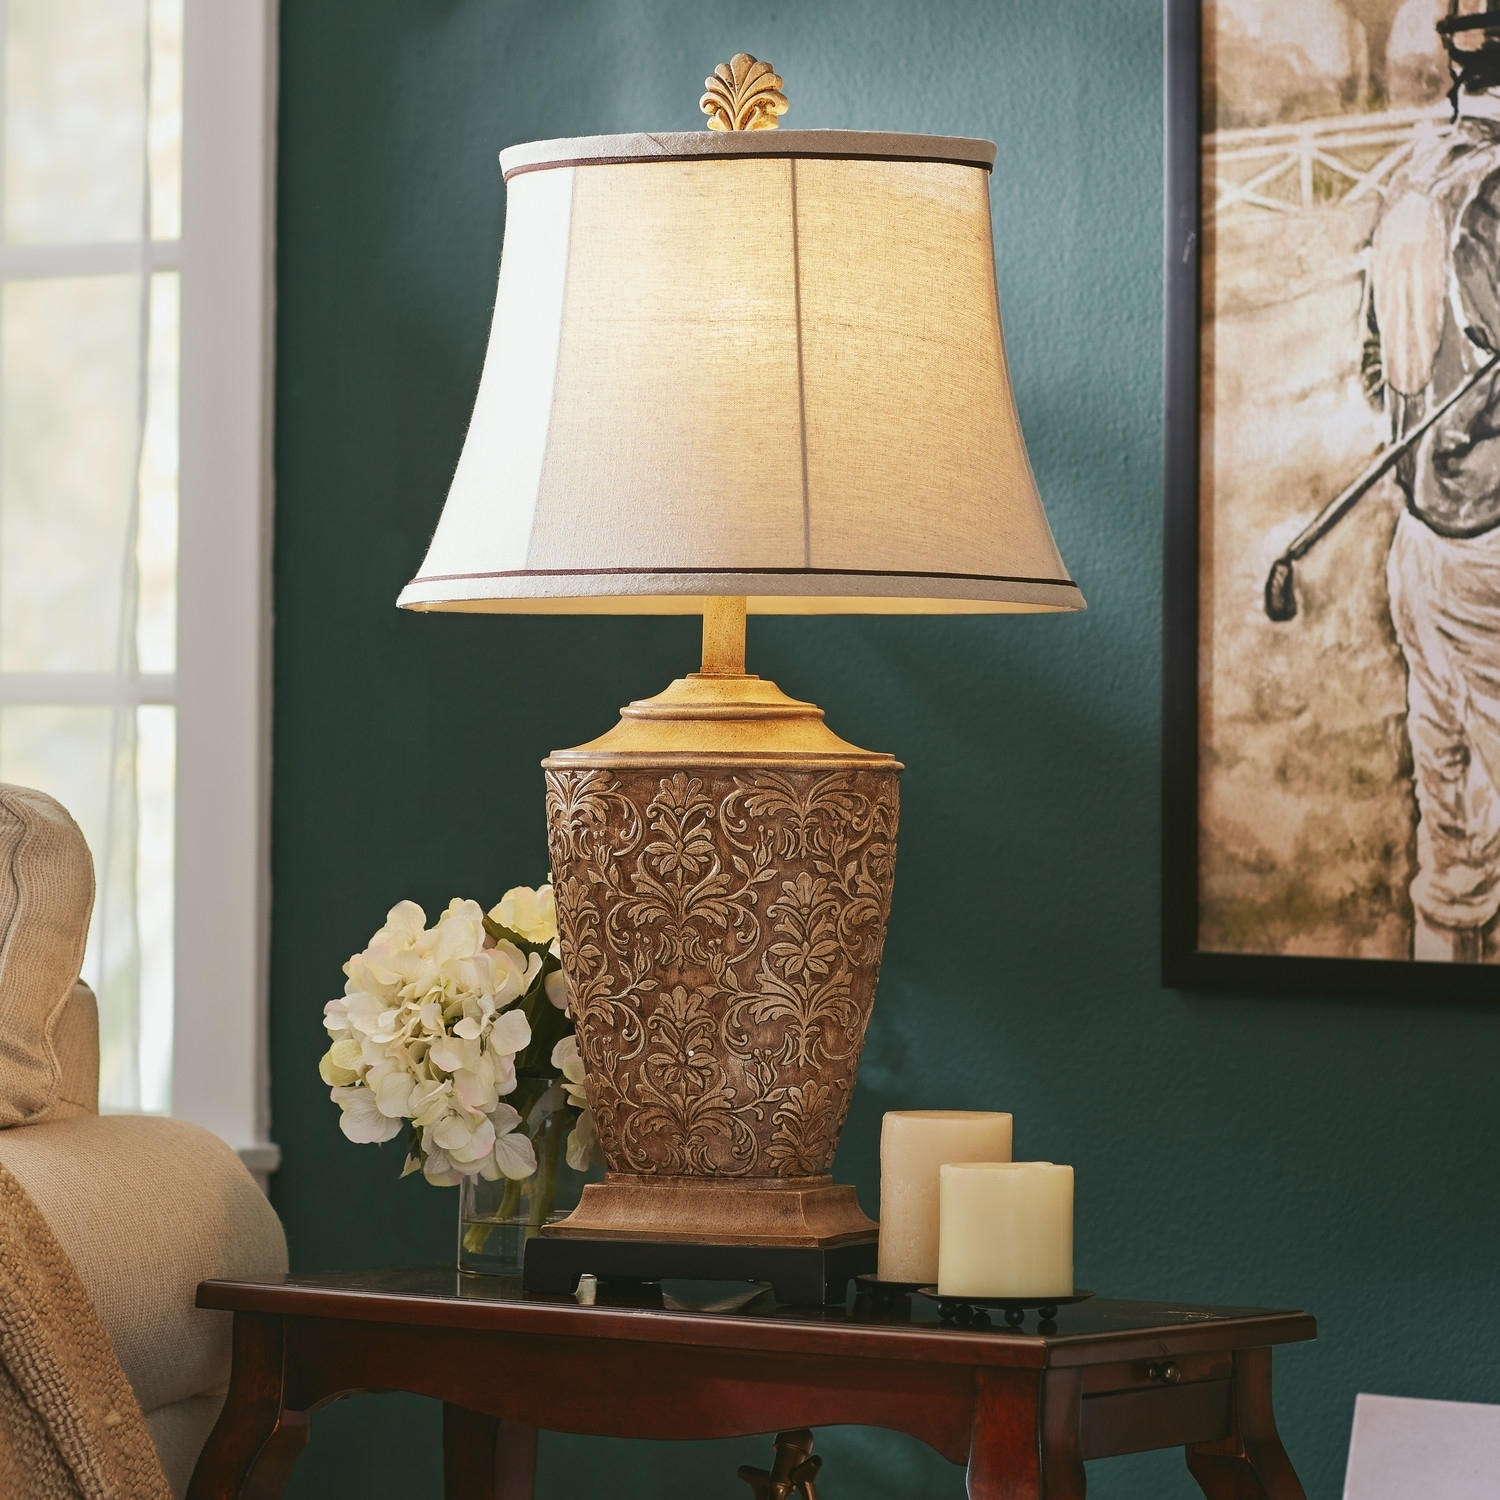 Inspiration about Table Lamps For Living Room – Americanmoderateparty Inside Luxury Living Room Table Lamps (#1 of 15)